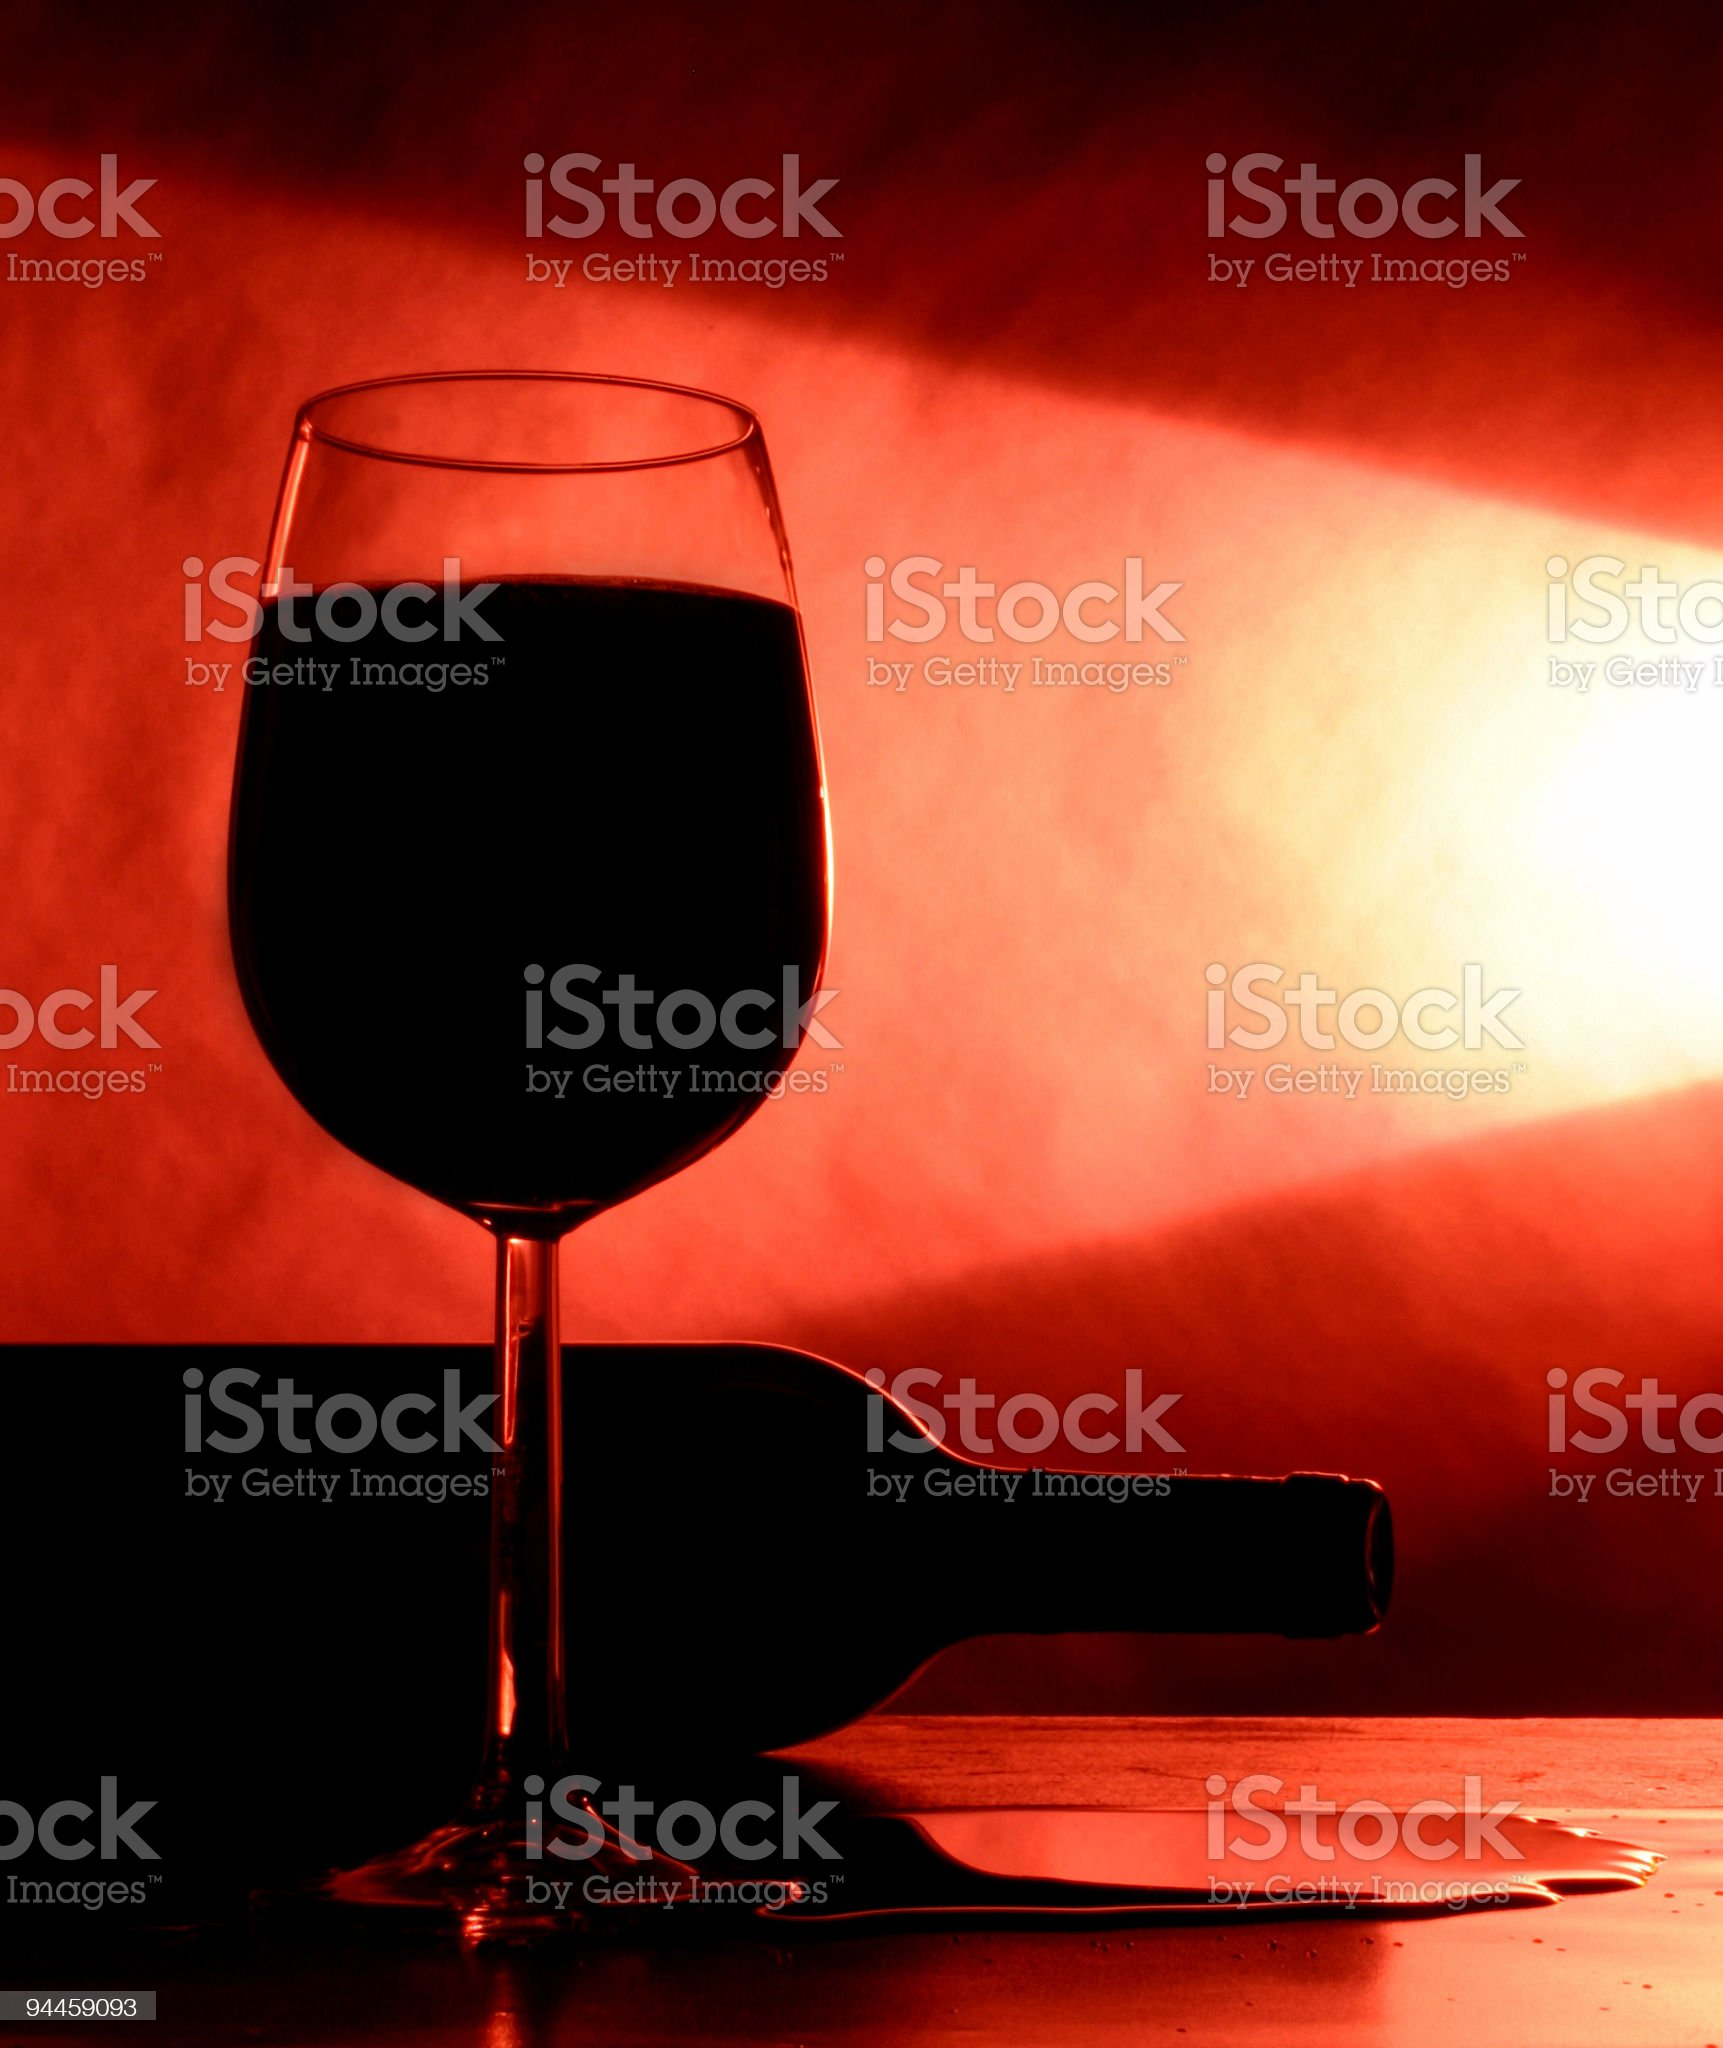 Alcohol - Red wine spillage royalty-free stock photo